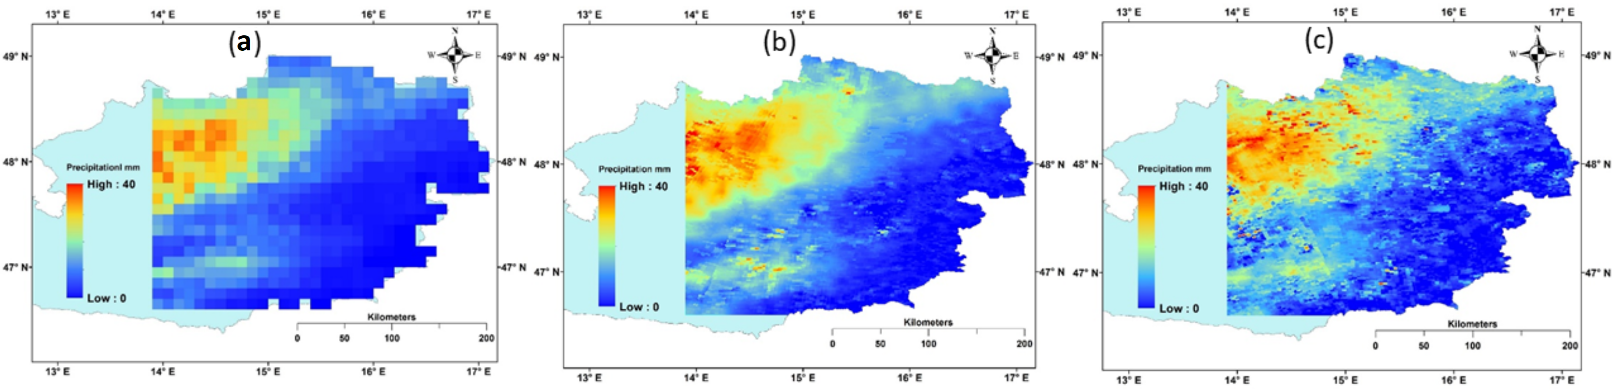 Figure 2. (a) original IMERG, (b) MLR-downscaled, and (c) ANN-downscaled precipitation for 3rd September 2015 event over northeast Austria.